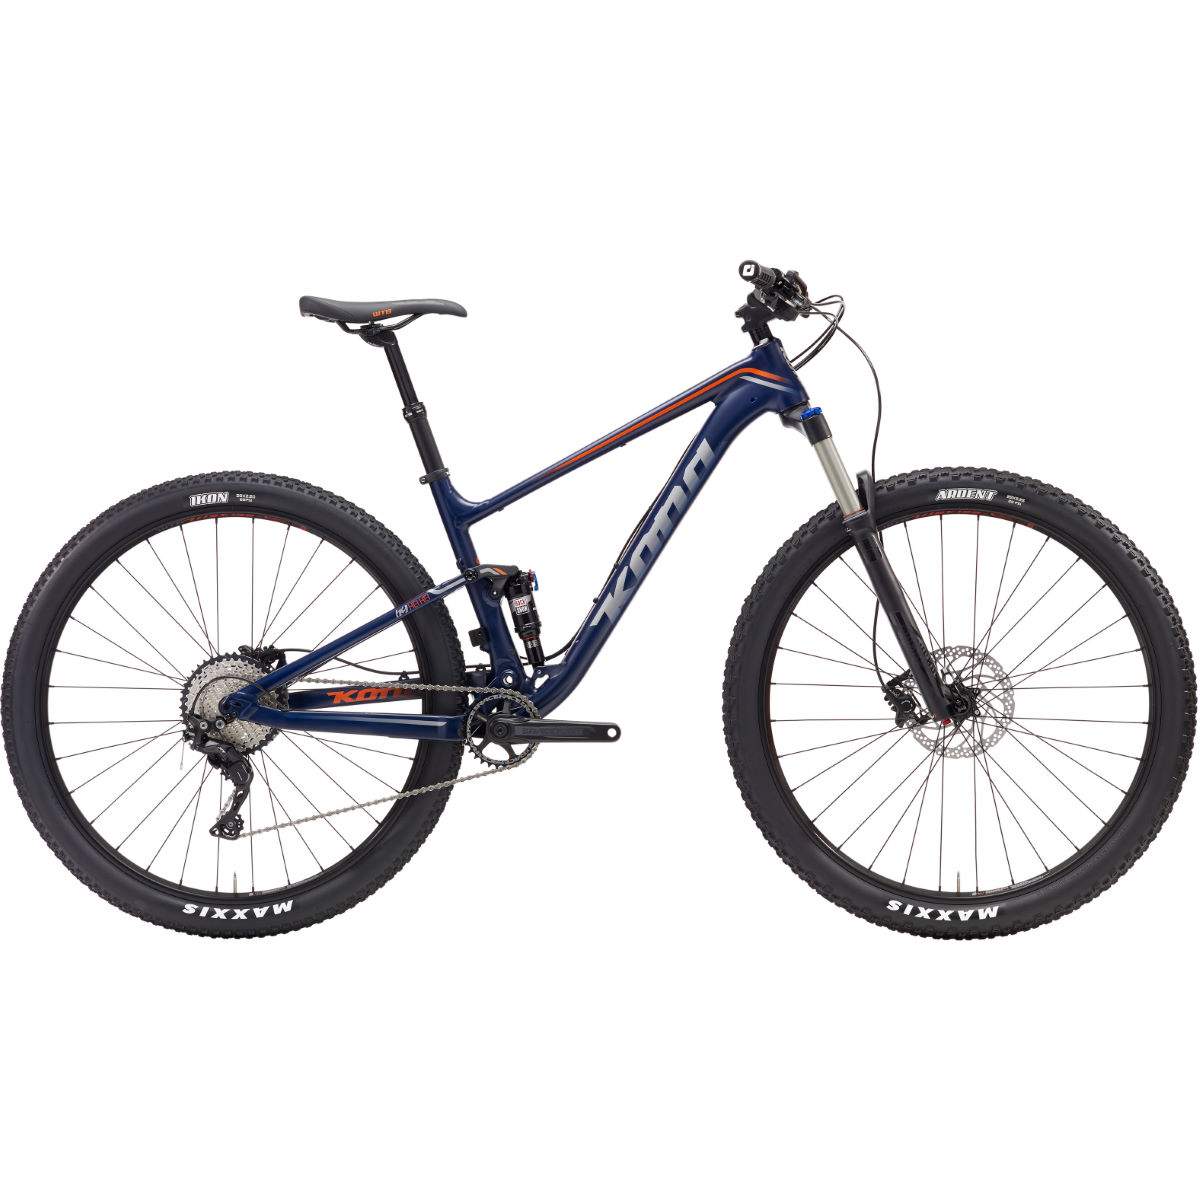 VTT Kona Hei Hei 29 (2017) - Medium Stock Bike Bleu